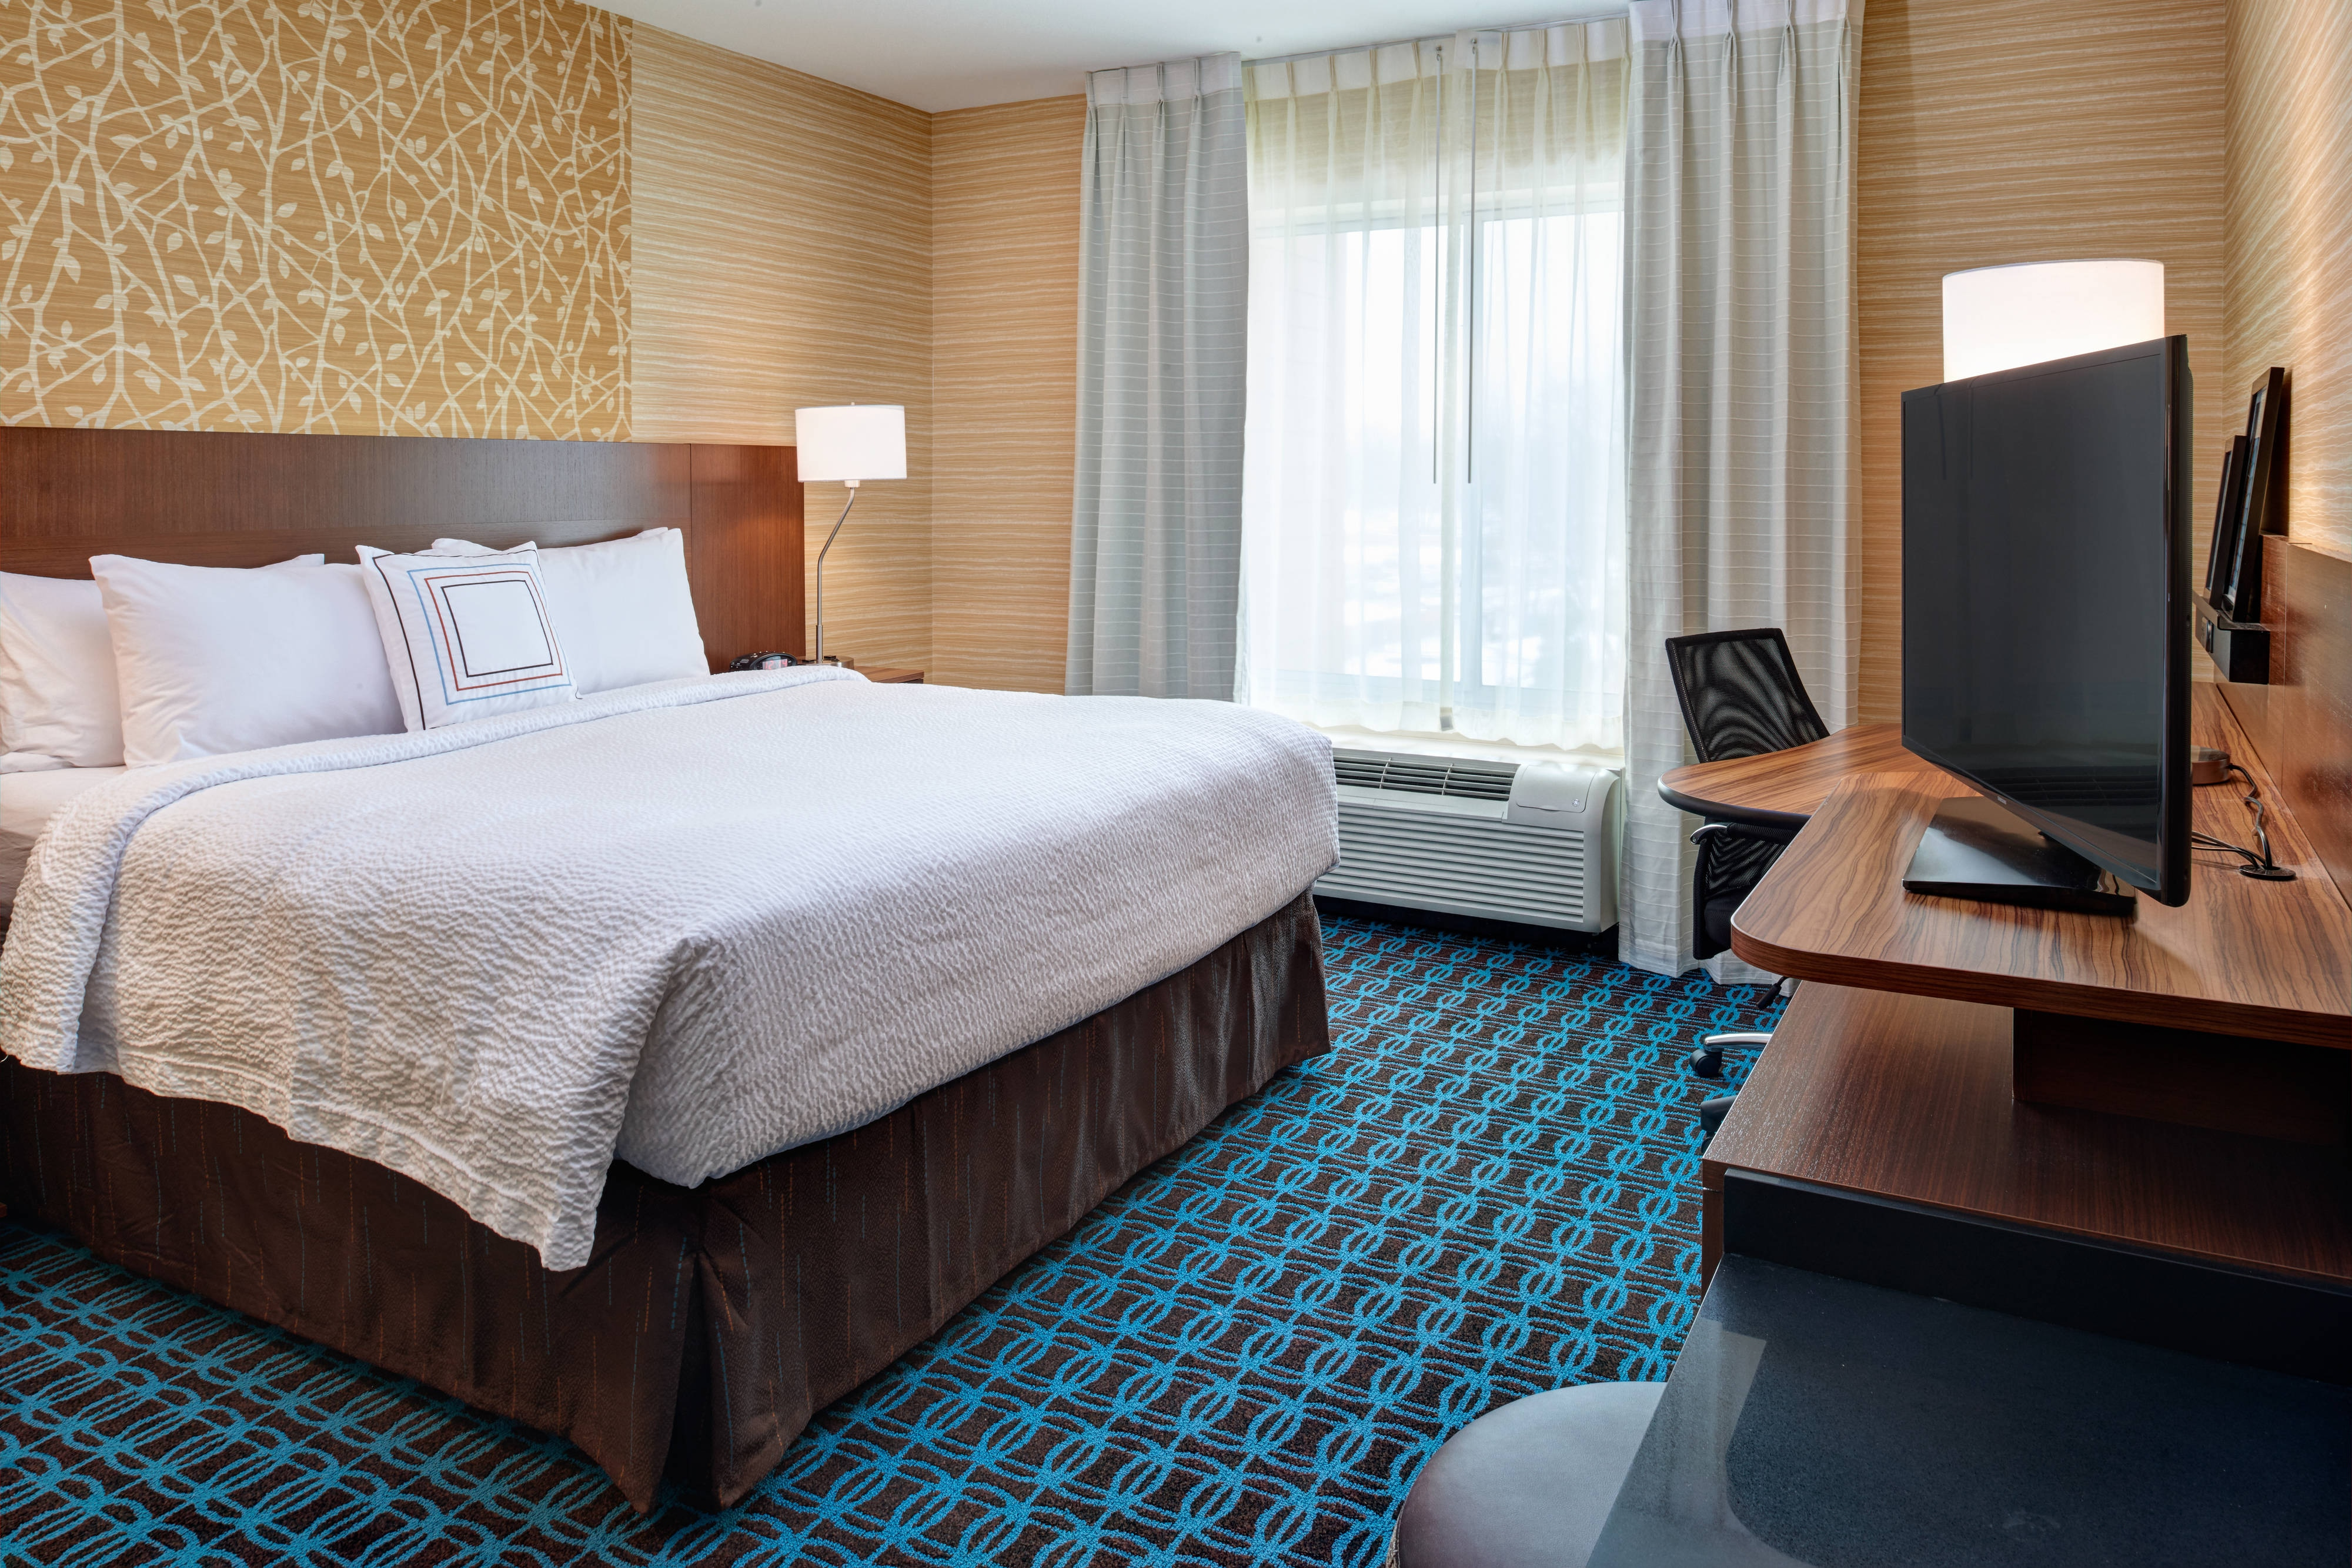 grand luxury rooms en in mgm detroit hotel room cheap queen